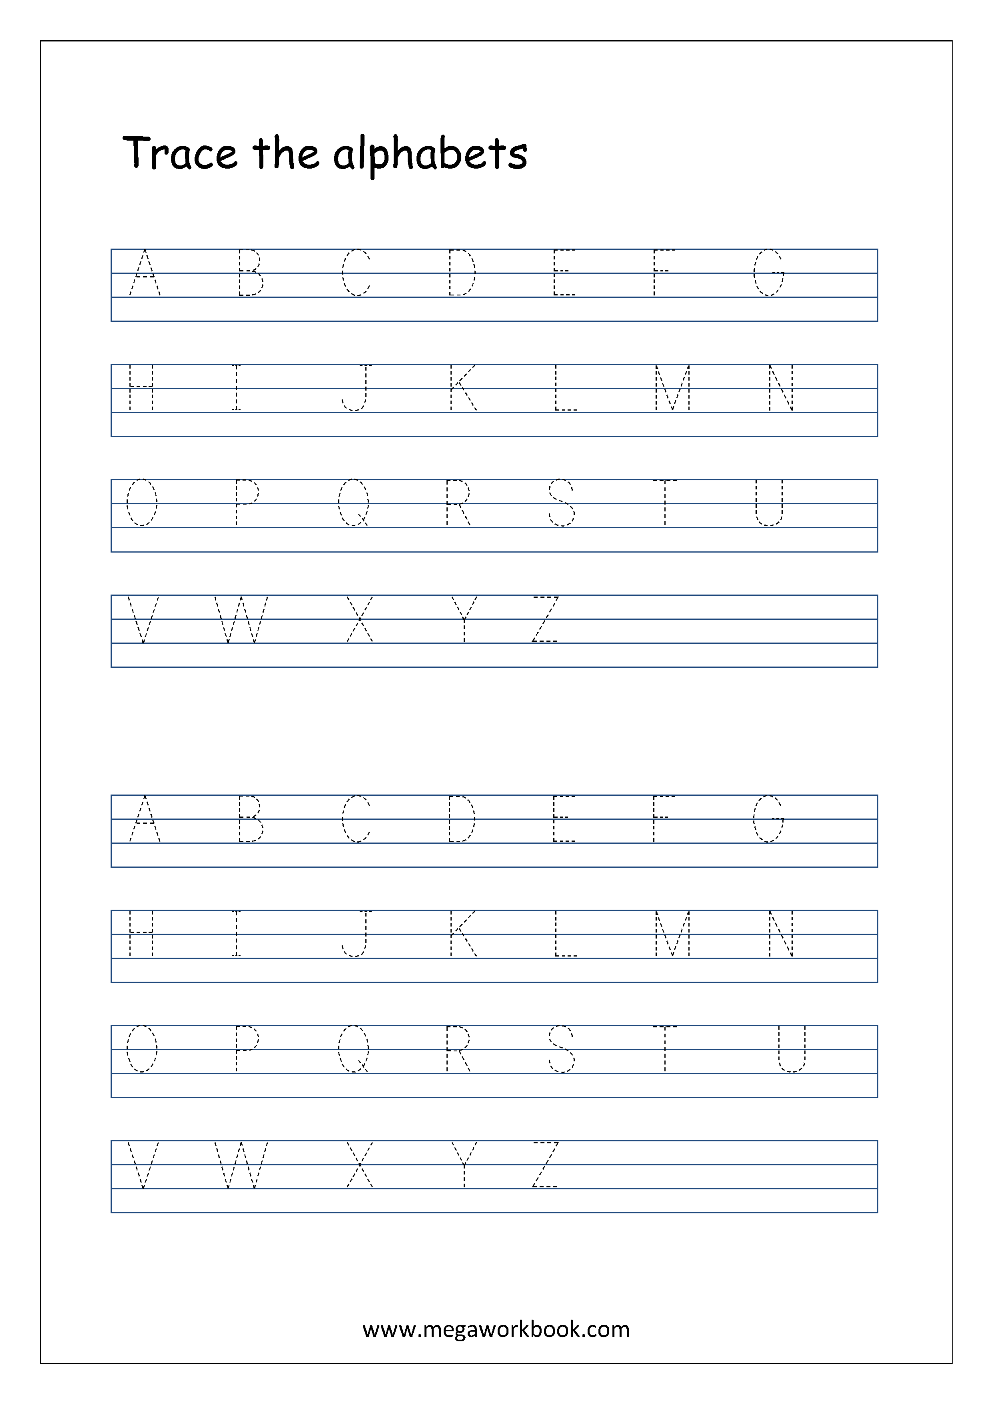 English Worksheet - Alphabet Tracing In 4 Lines - Capital